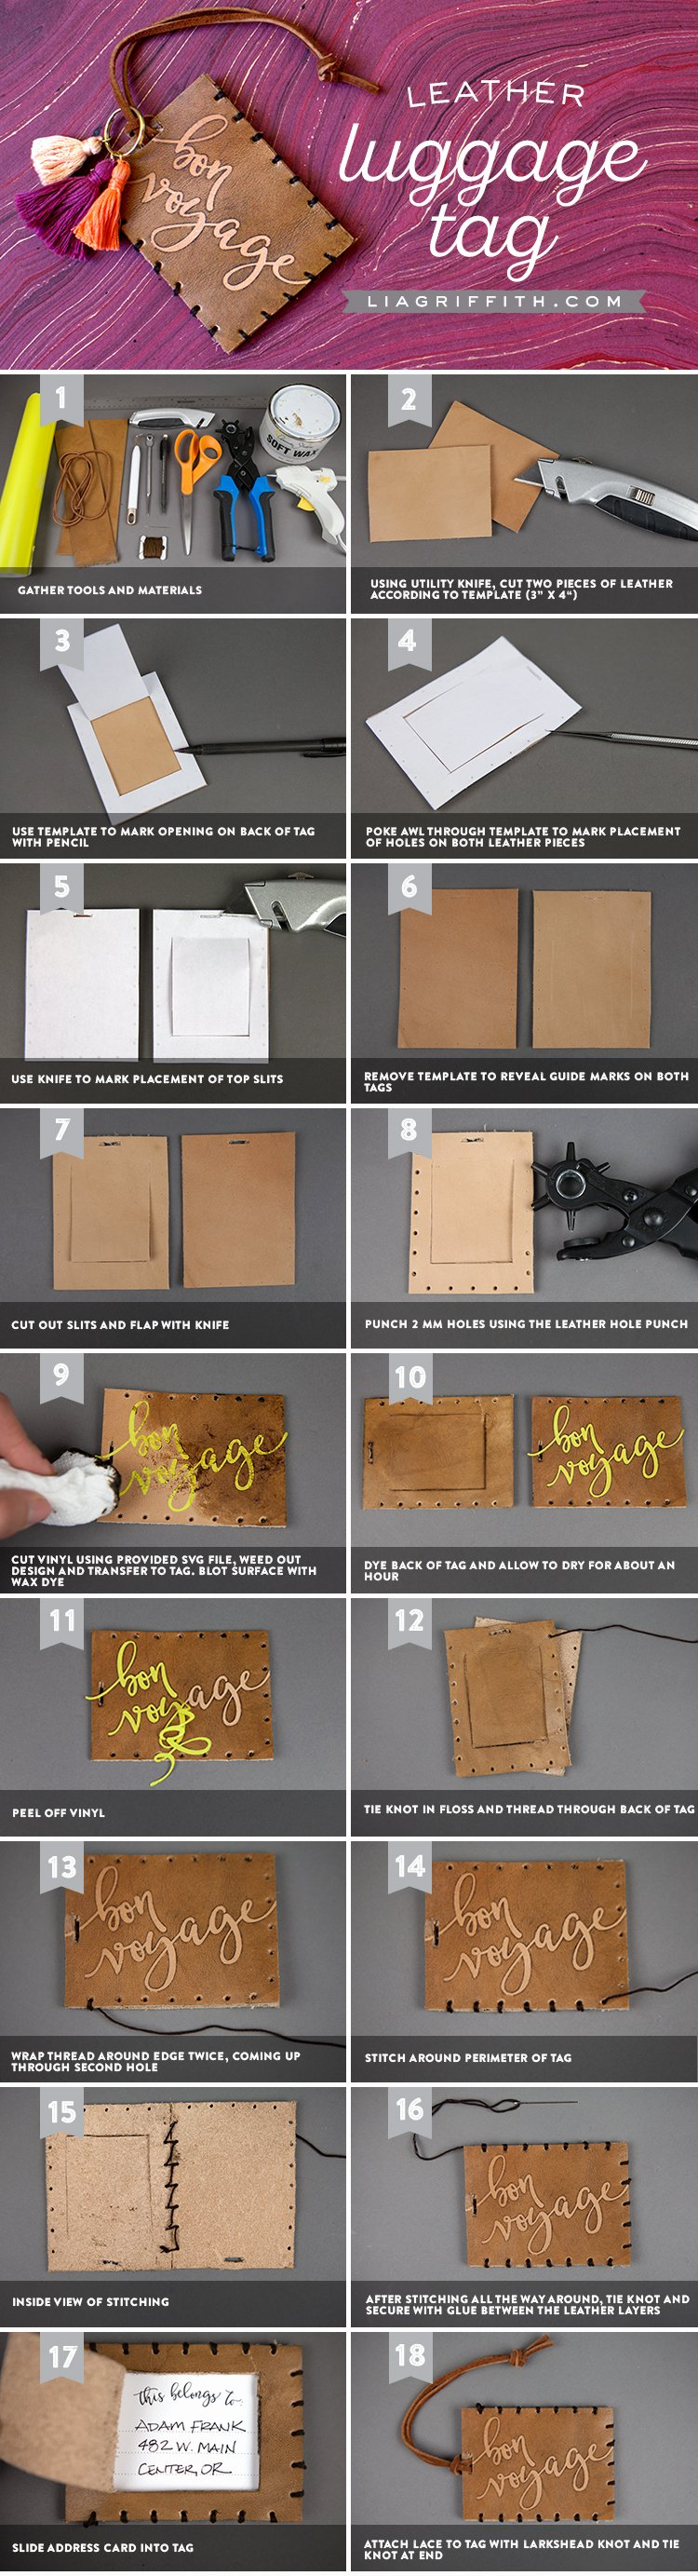 Luggage Tag Insert Template Luxury How to Make Your Own Luggage Tags